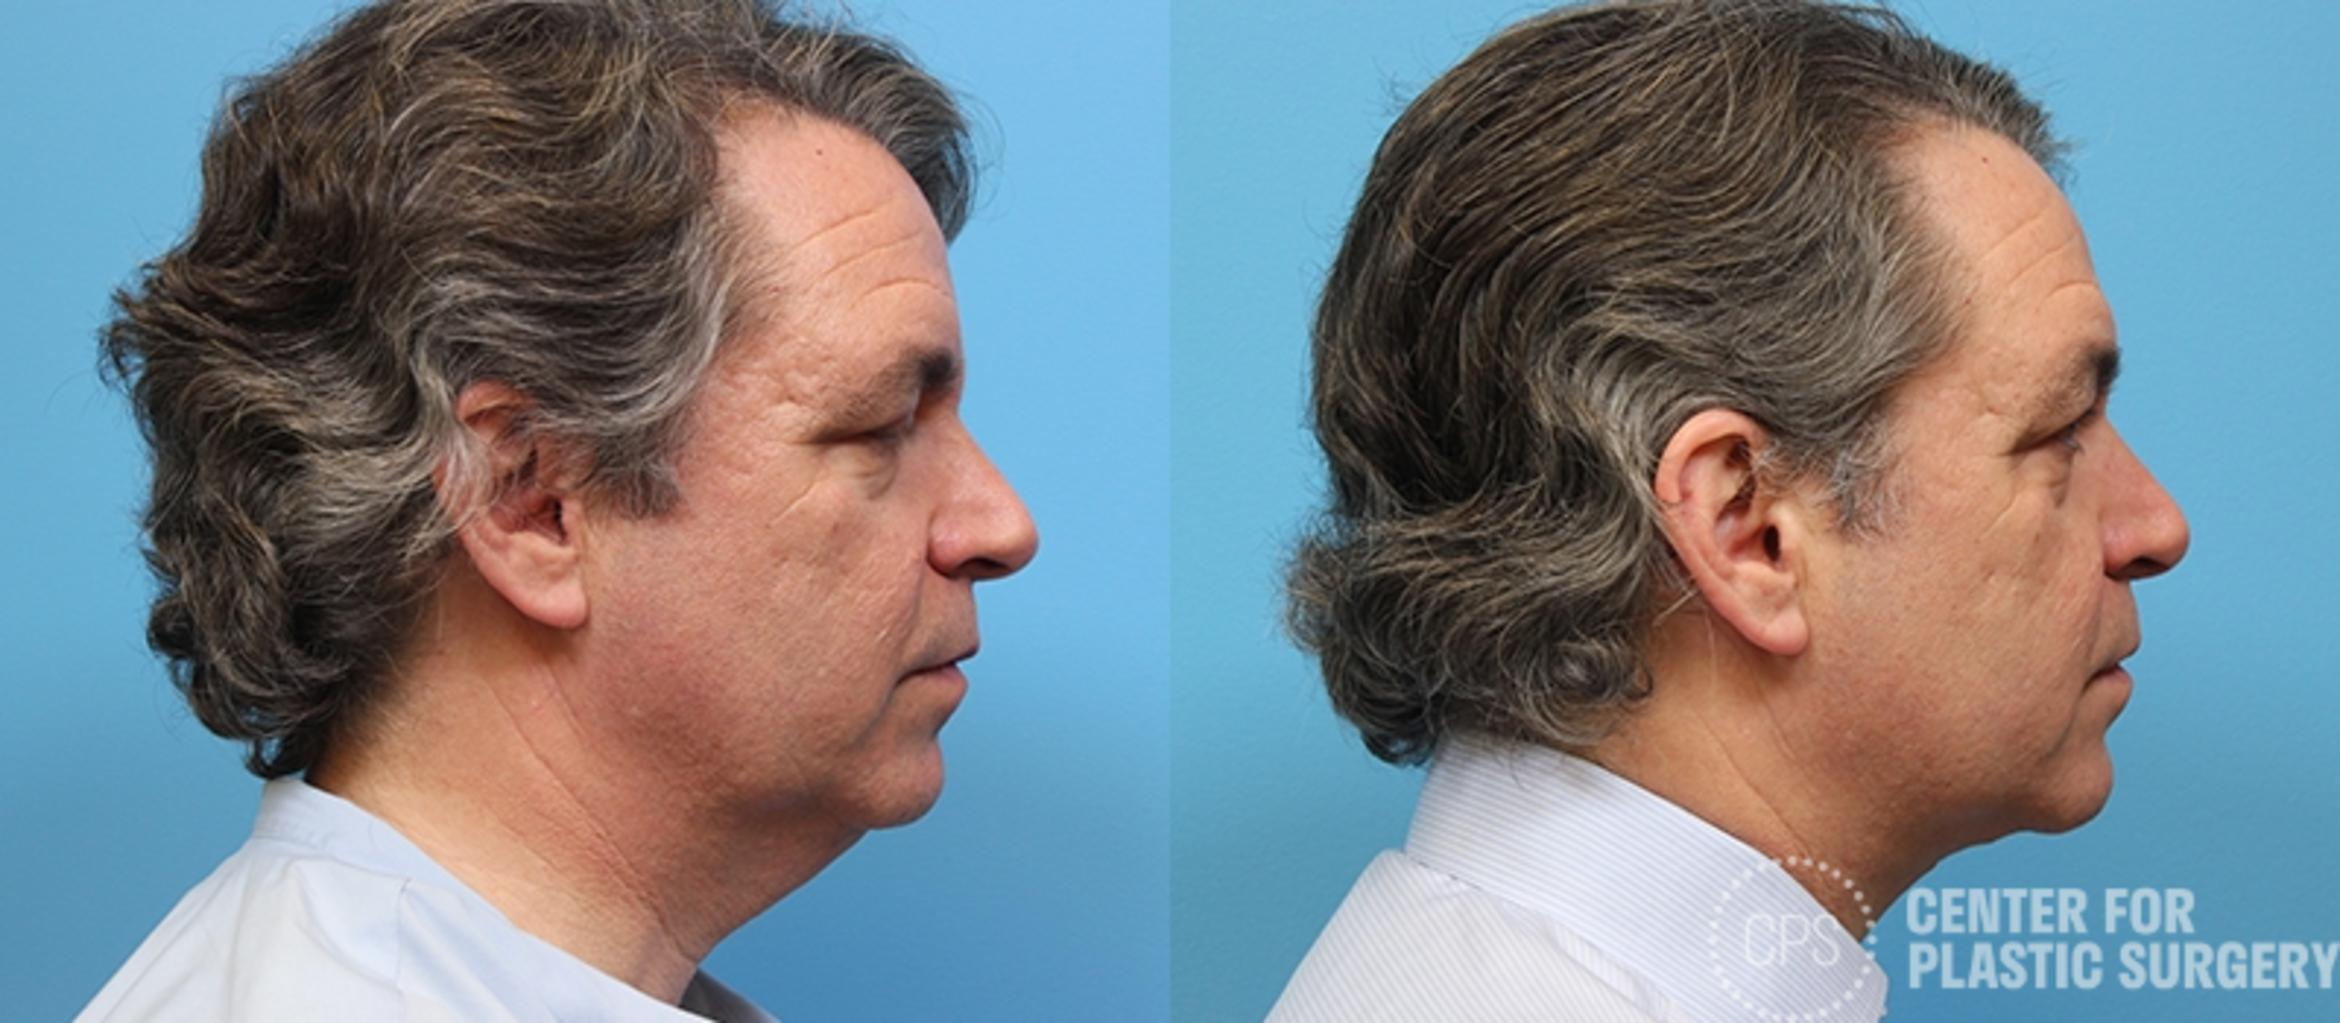 Neck Lift Case 30 Before & After Right Side | Annandale, VA & Chevy Chase, MD, Washington D.C. Metropolitan Area | Center for Plastic Surgery